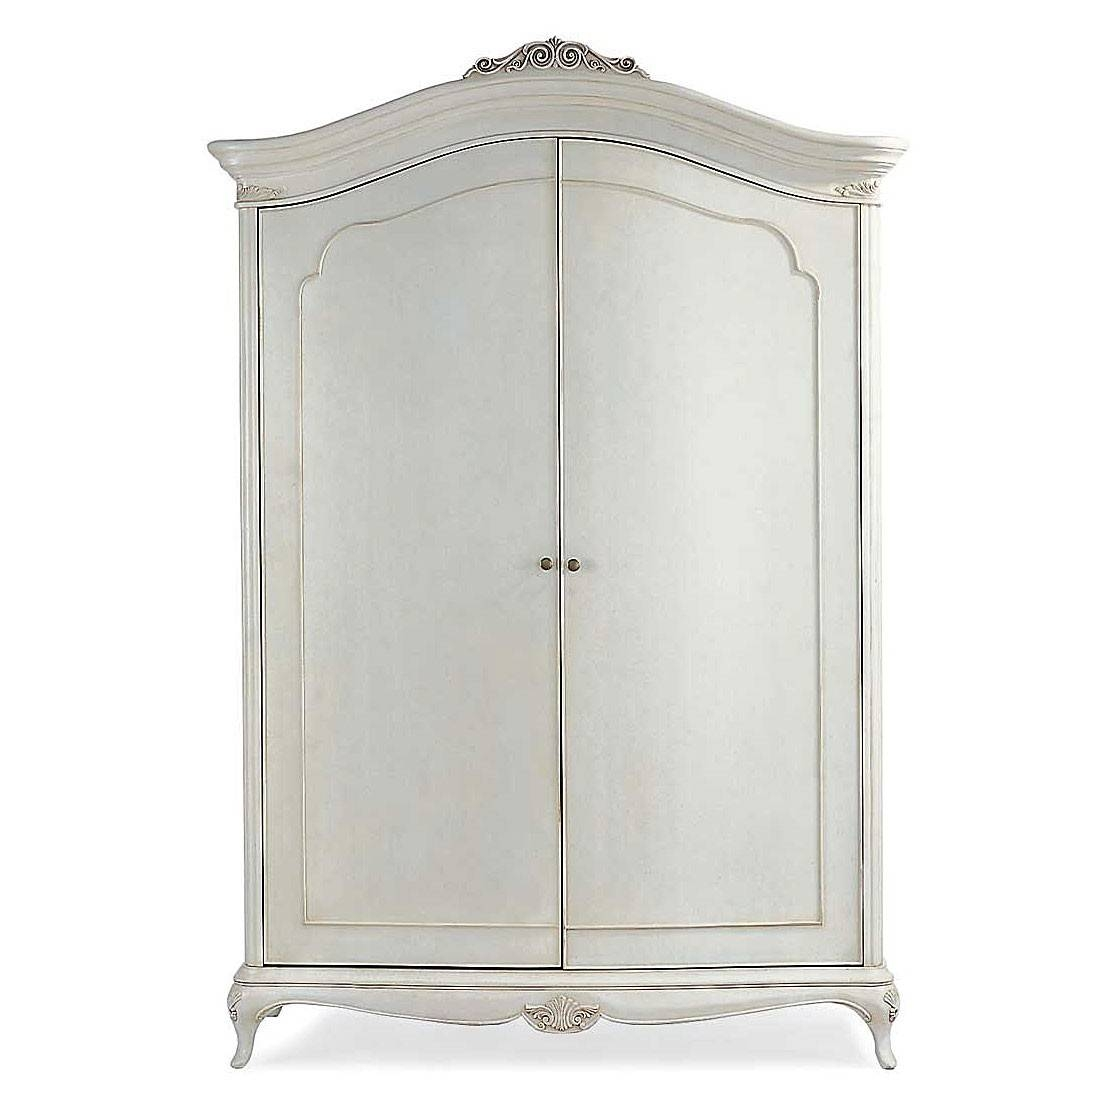 Ivory French Inspired Wide Fitted Wardrobe | French Bedroom regarding French Style Wardrobes (Image 7 of 15)